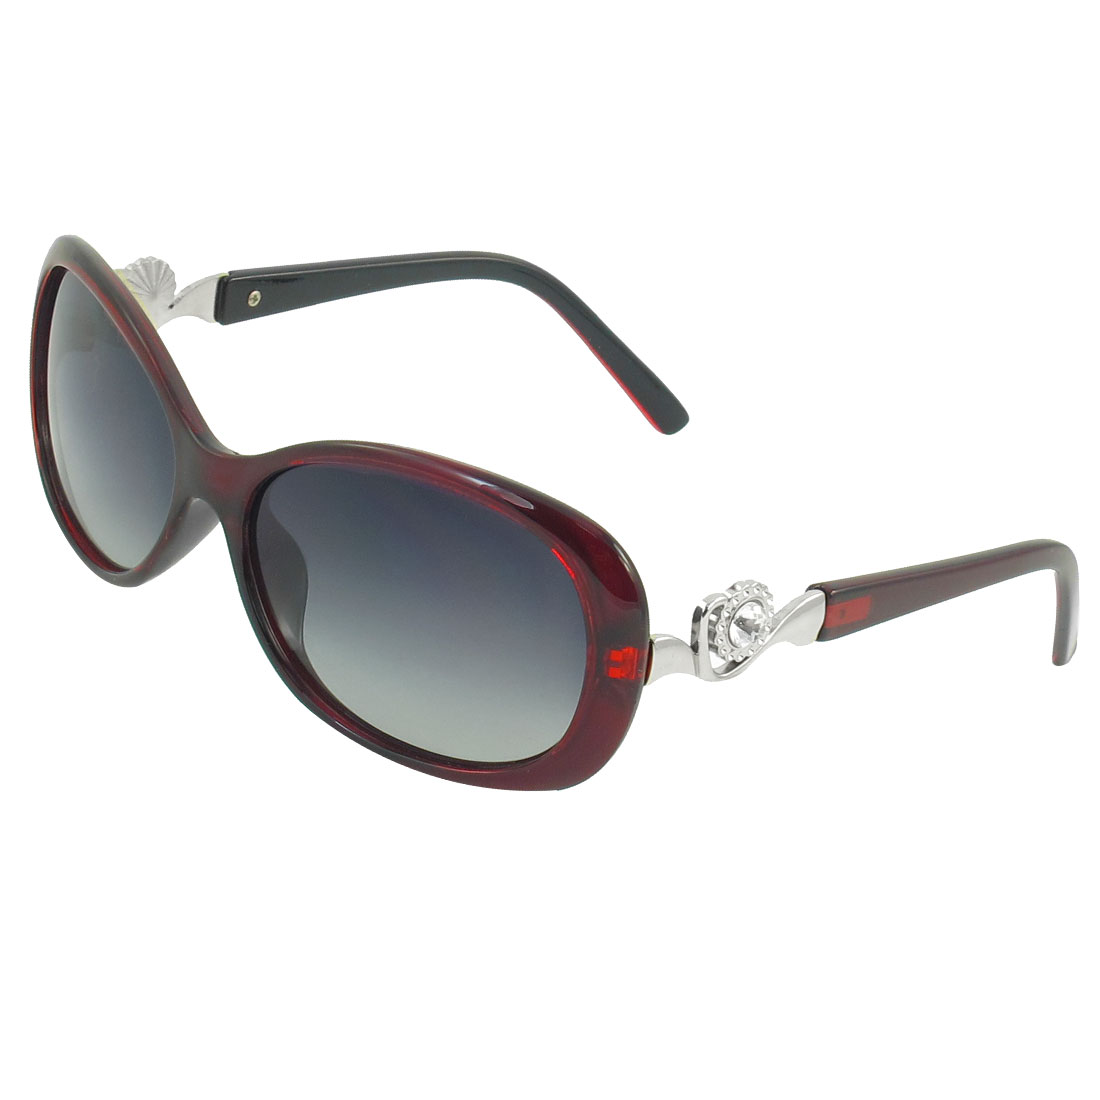 Burgundy Rimmed Rhinestone Inlaid Metal Temple Polarized Sunglasses for Woman